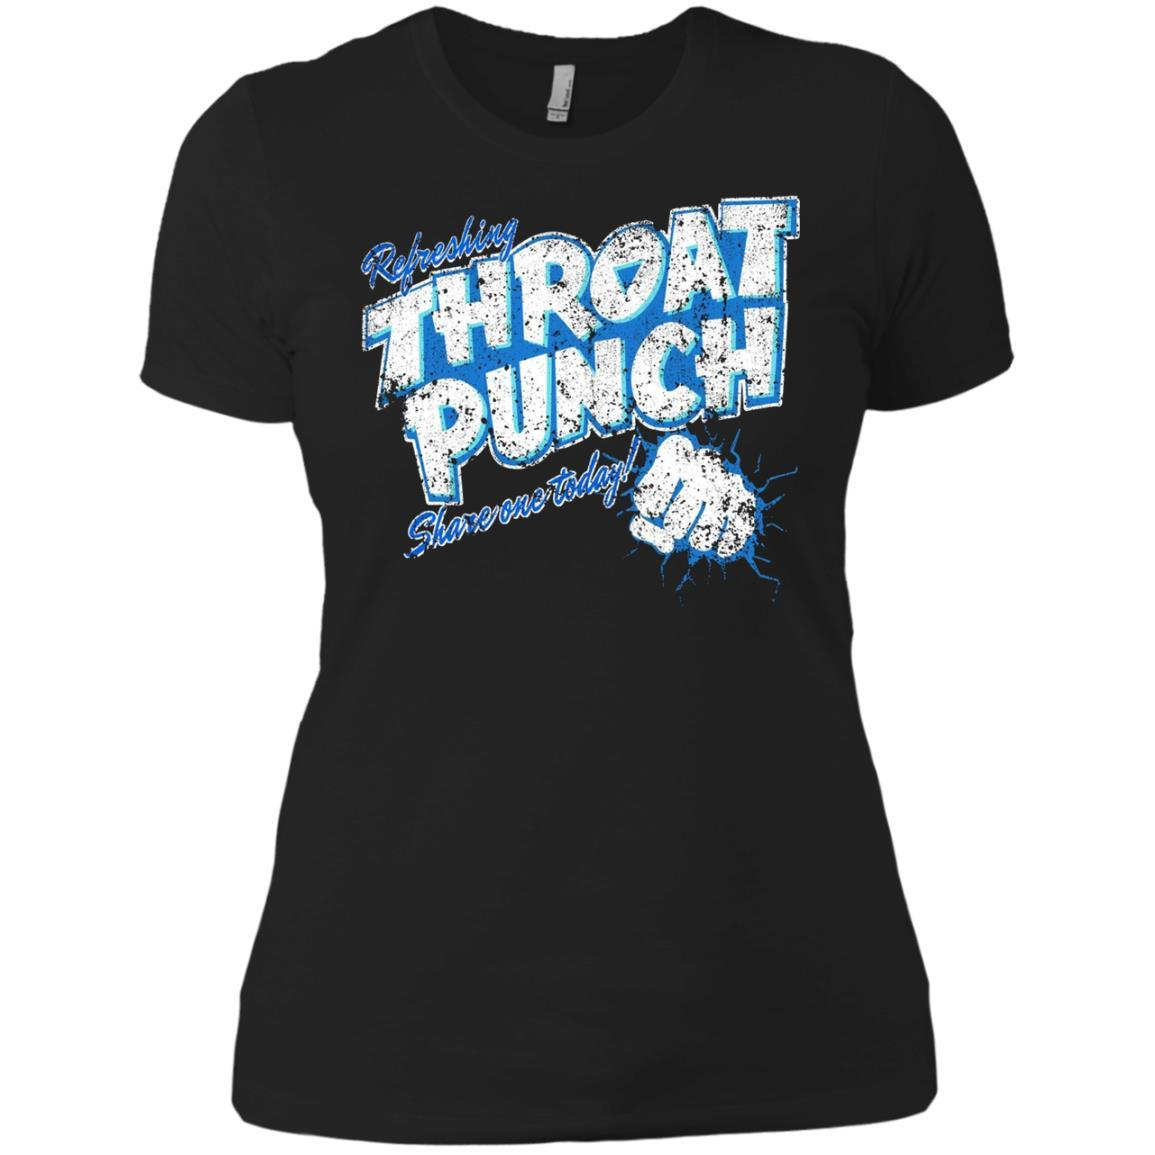 Refreshing Throat Punch Grunge Ladies' Boyfriend T-Shirt Style / Color / Size